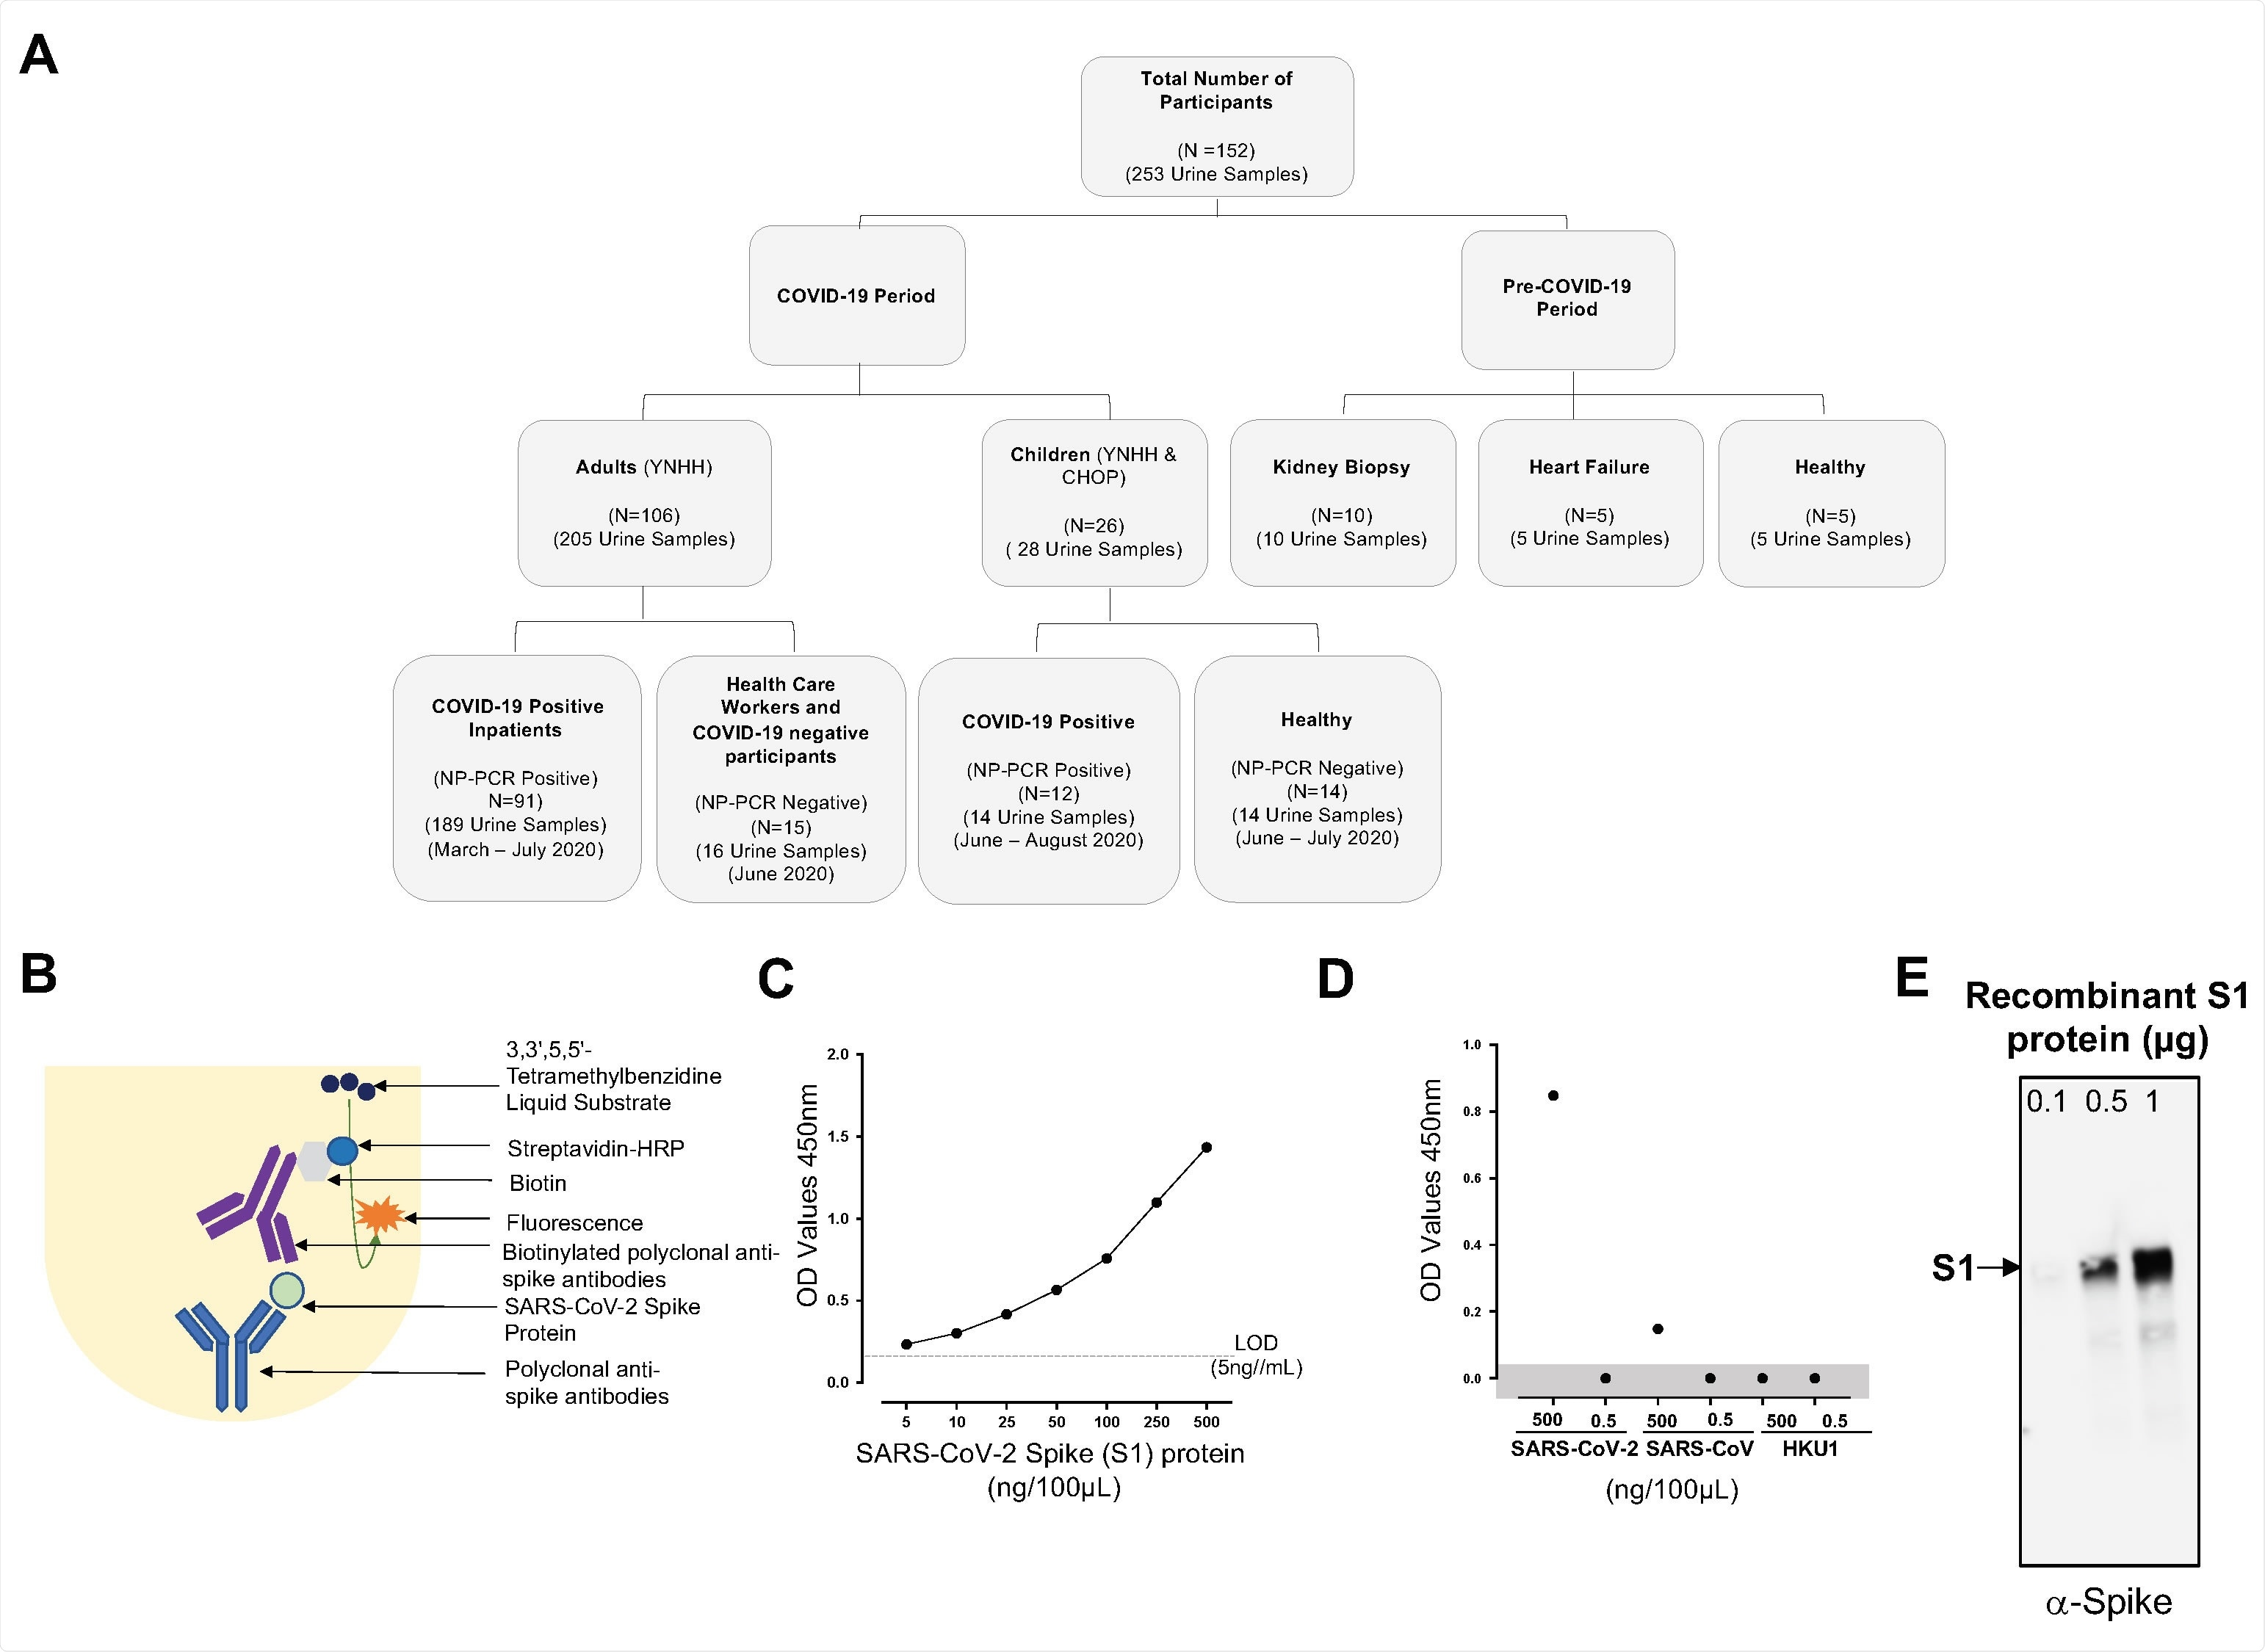 Consolidated summary of study population, assay chemistry, and sensitivity and specificity of the SARS-CoV-2 spike protein using capture ELISA. (A) Flowchart describing the study population. Samples used in this study were collected both before and during the COVID-19 pandemic. (B) Schematic representative of the Capture ELISA assay chemistry. (C) Representative standard curve generated using 5μg/mL SARS-CoV-2 polyclonal anti-spike antibodies. (D) Assay to define the specificity of the SARS-CoV-2 Capture ELISA. Two different concentrations (5μg/mL and 5ng/mL) of different coronavirus infecting humans (SARS-CoV-2, SARS-CoV and HCoV-HKU1) were assessed to determine the specificity of the Polyclonal anti-spike SARS-CoV-2 antibodies. Data points in the shaded area are below the limit of detection. (E) Sensitivity of the polyclonal antibodies to detect SARS-CoV-2 spike S1 protein using Western blot. SARS-CoV-2 in three different concentration was measured 0.1μg, 0.5μg and 1μg.